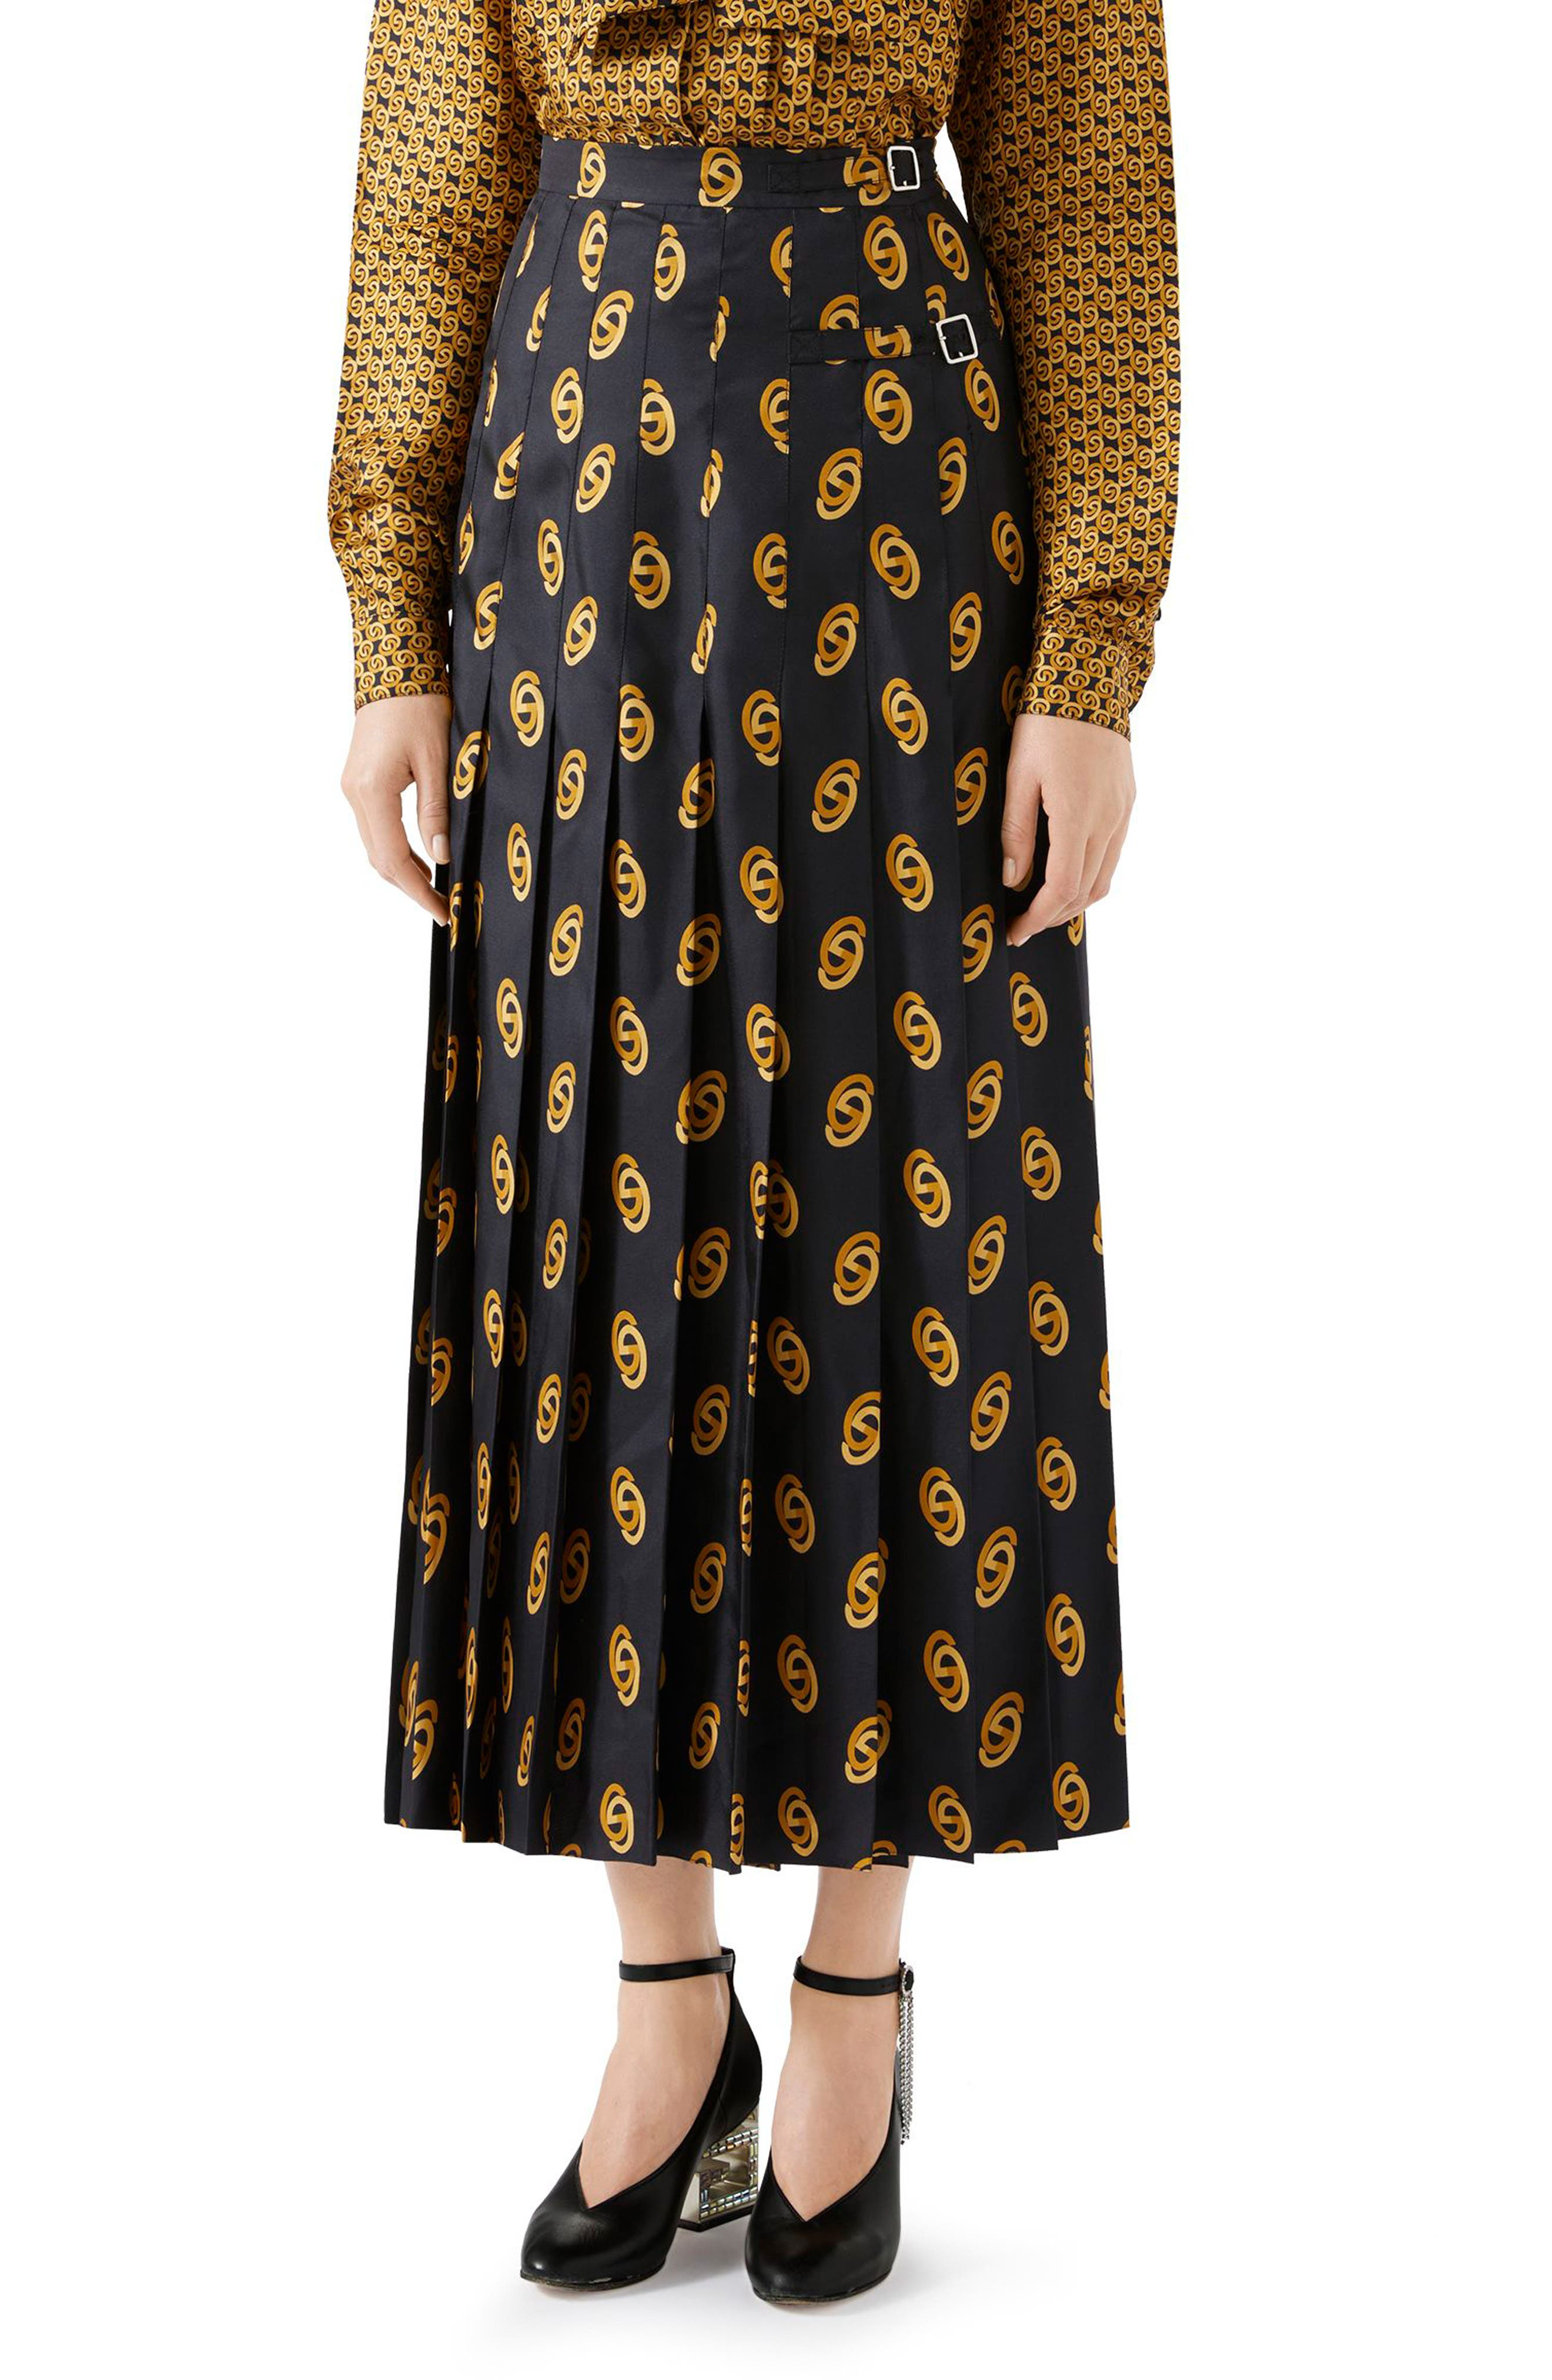 GUCCI,                             Pleated GG Silk Twill Skirt,                             Main thumbnail 1, color,                             1744 BLACK/ GOLD PRINTED